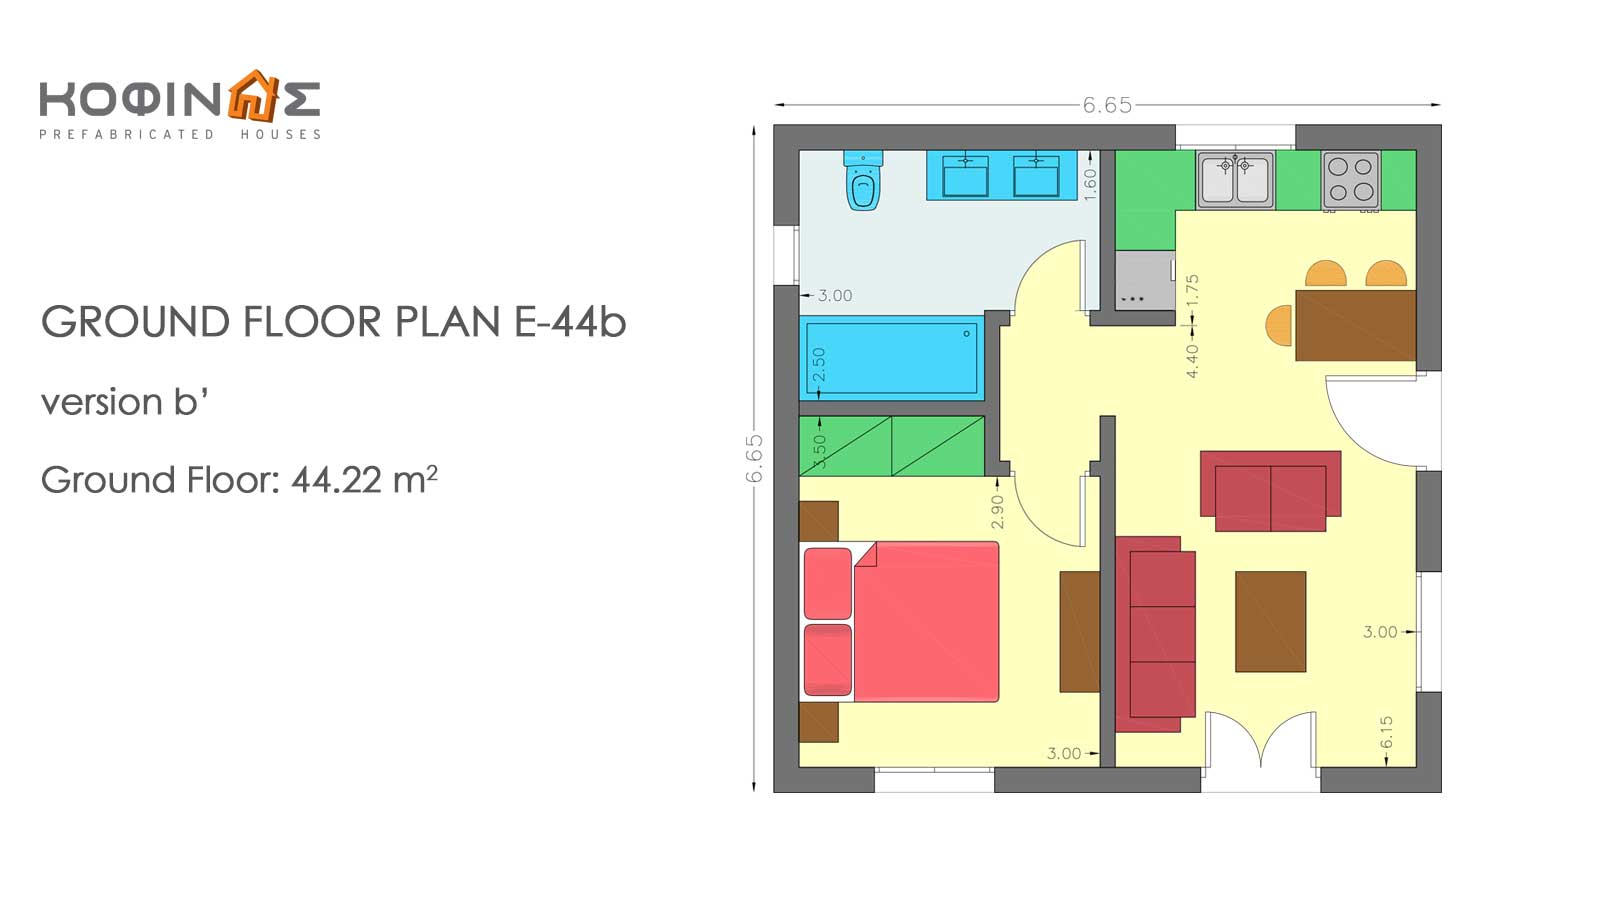 Complex of 1-story houses E-44 / E-66,  total surface of (3 x 44,22) + (3 x 66,42) = 331,92 m²